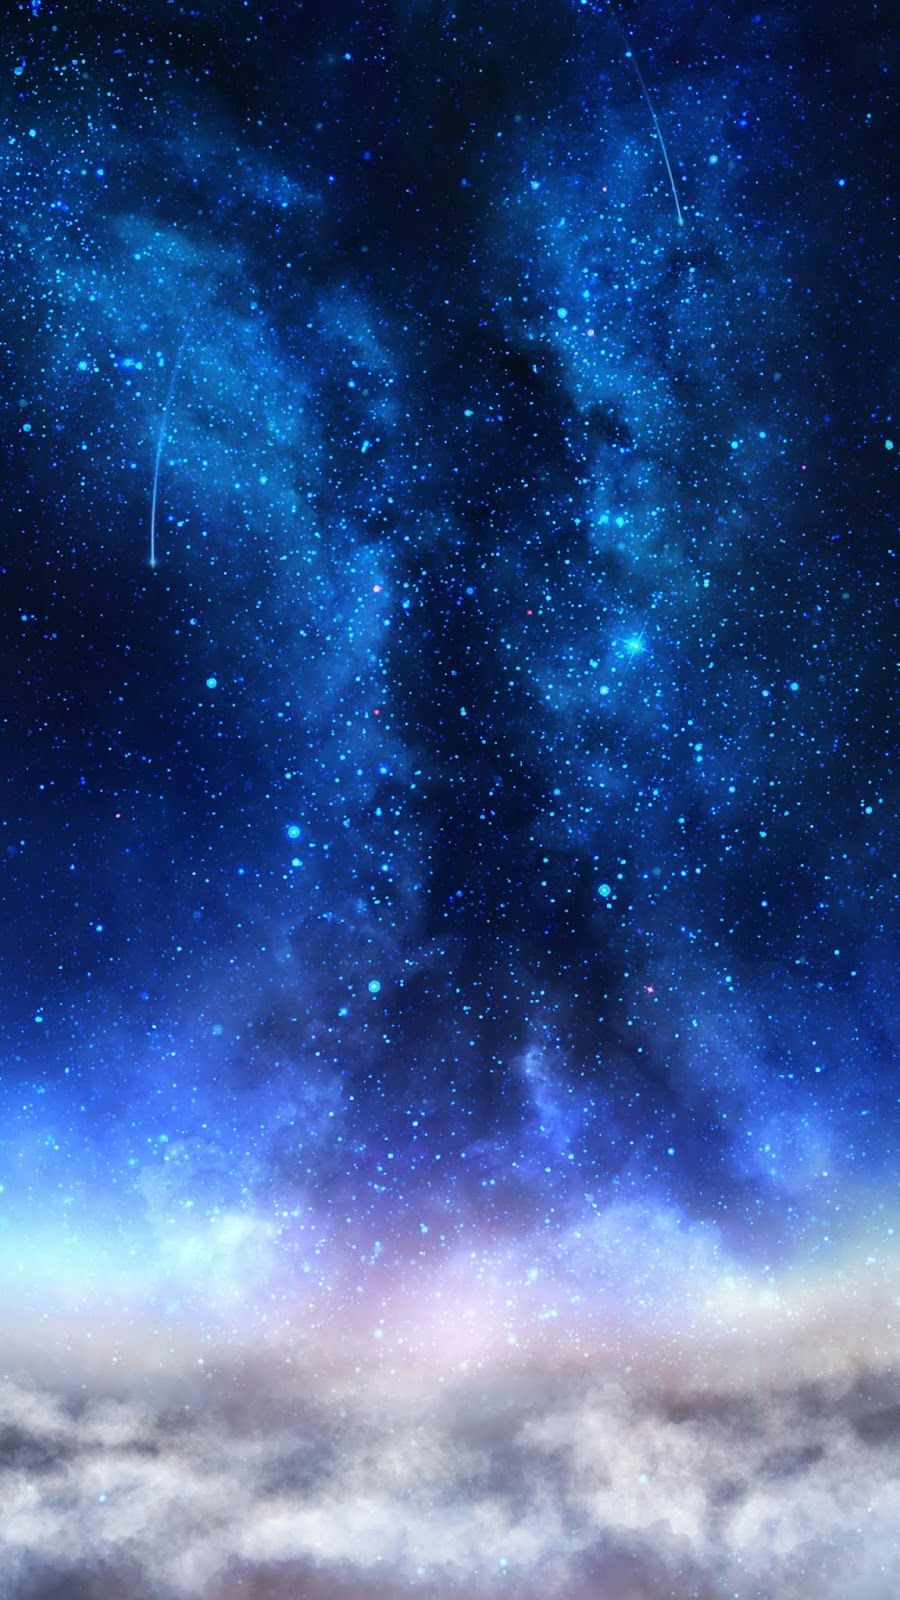 Milky Way Wallpaper Iphone Android Background Followme Galaxies Wallpaper Backgrounds Phone Wallpapers Galaxy Wallpaper